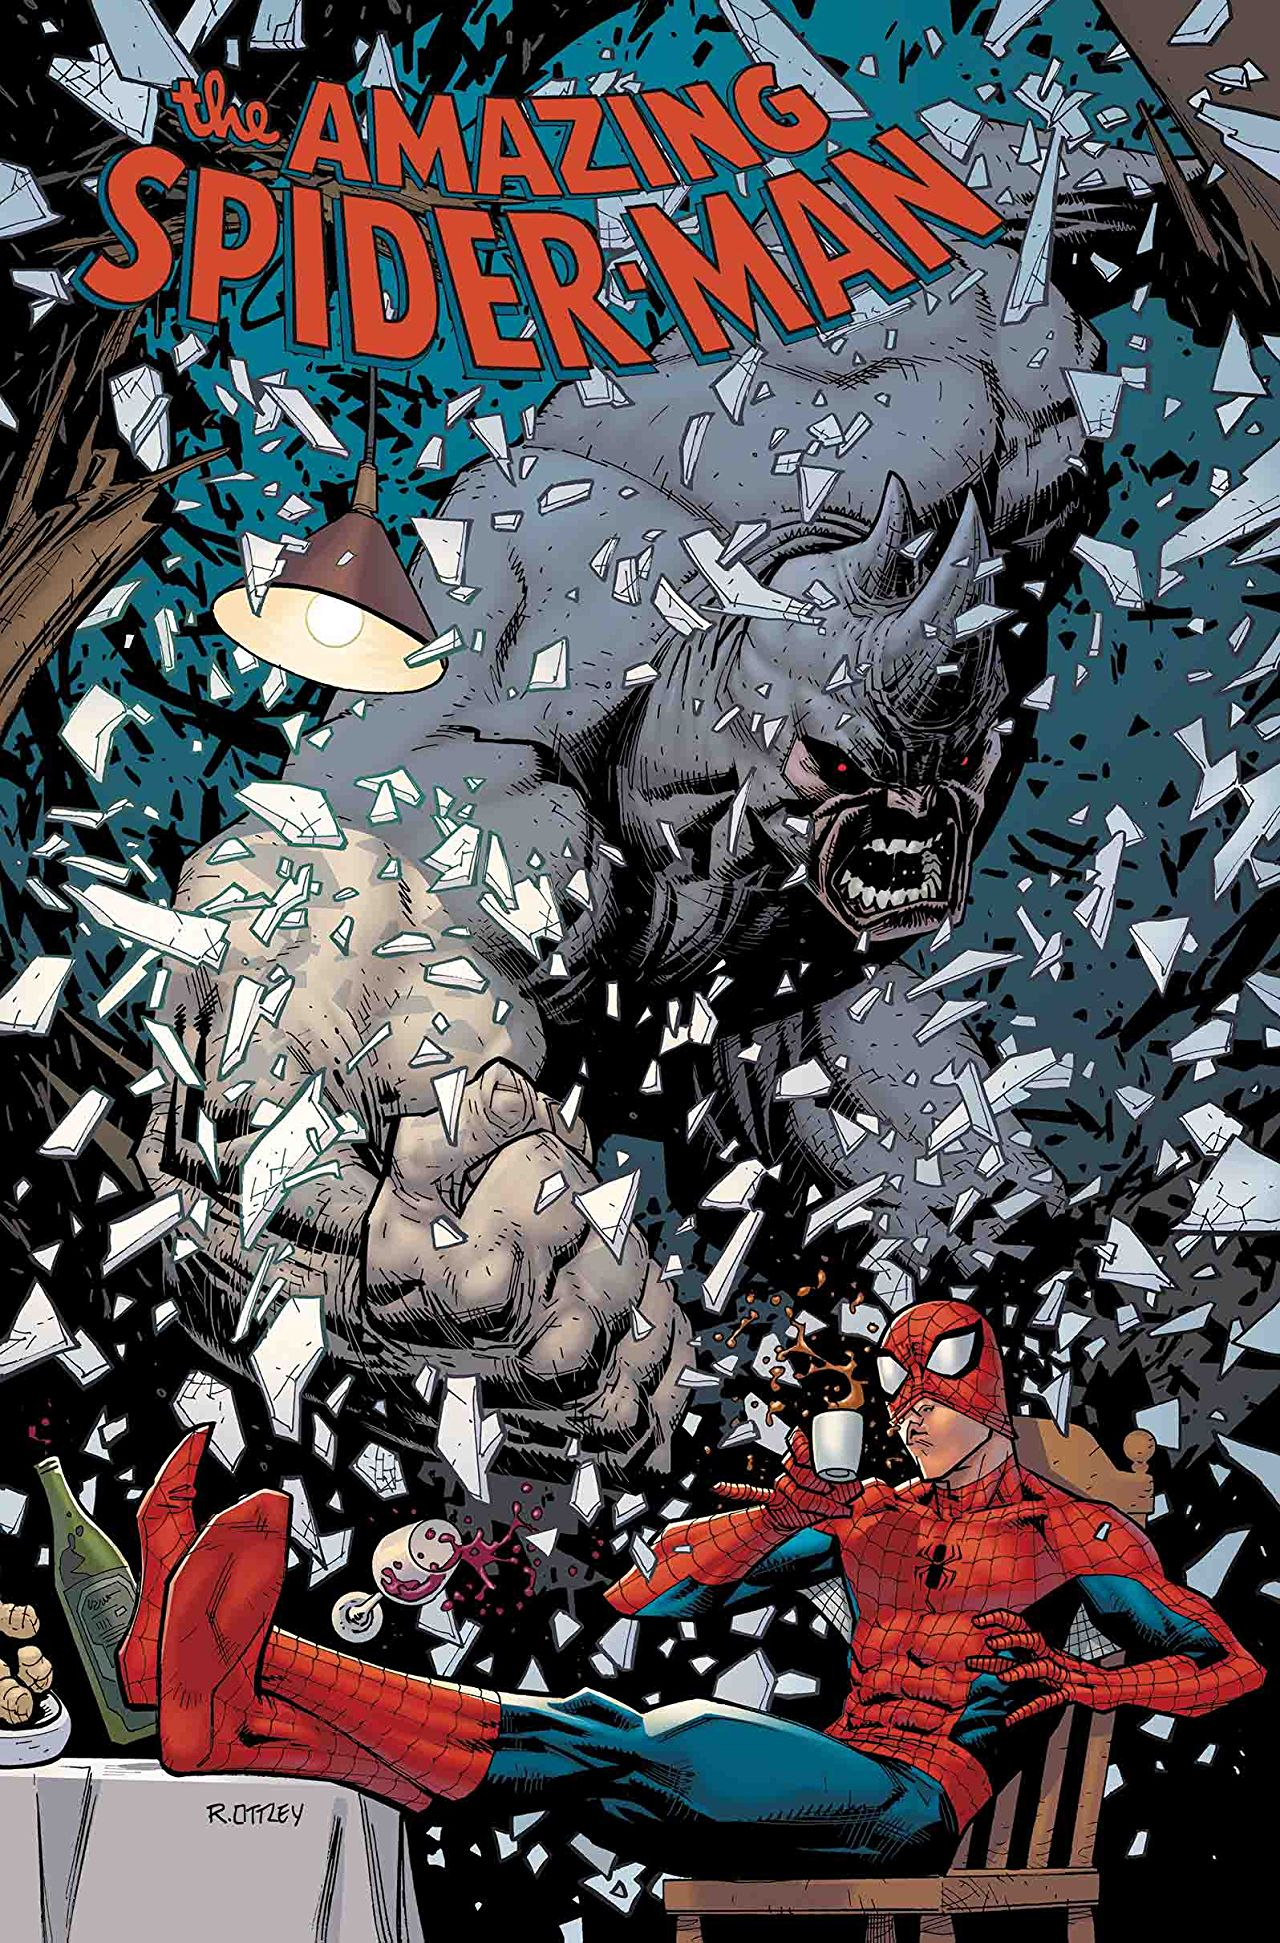 Amazing Spider-Man Vol 5 14 Textless.jpg